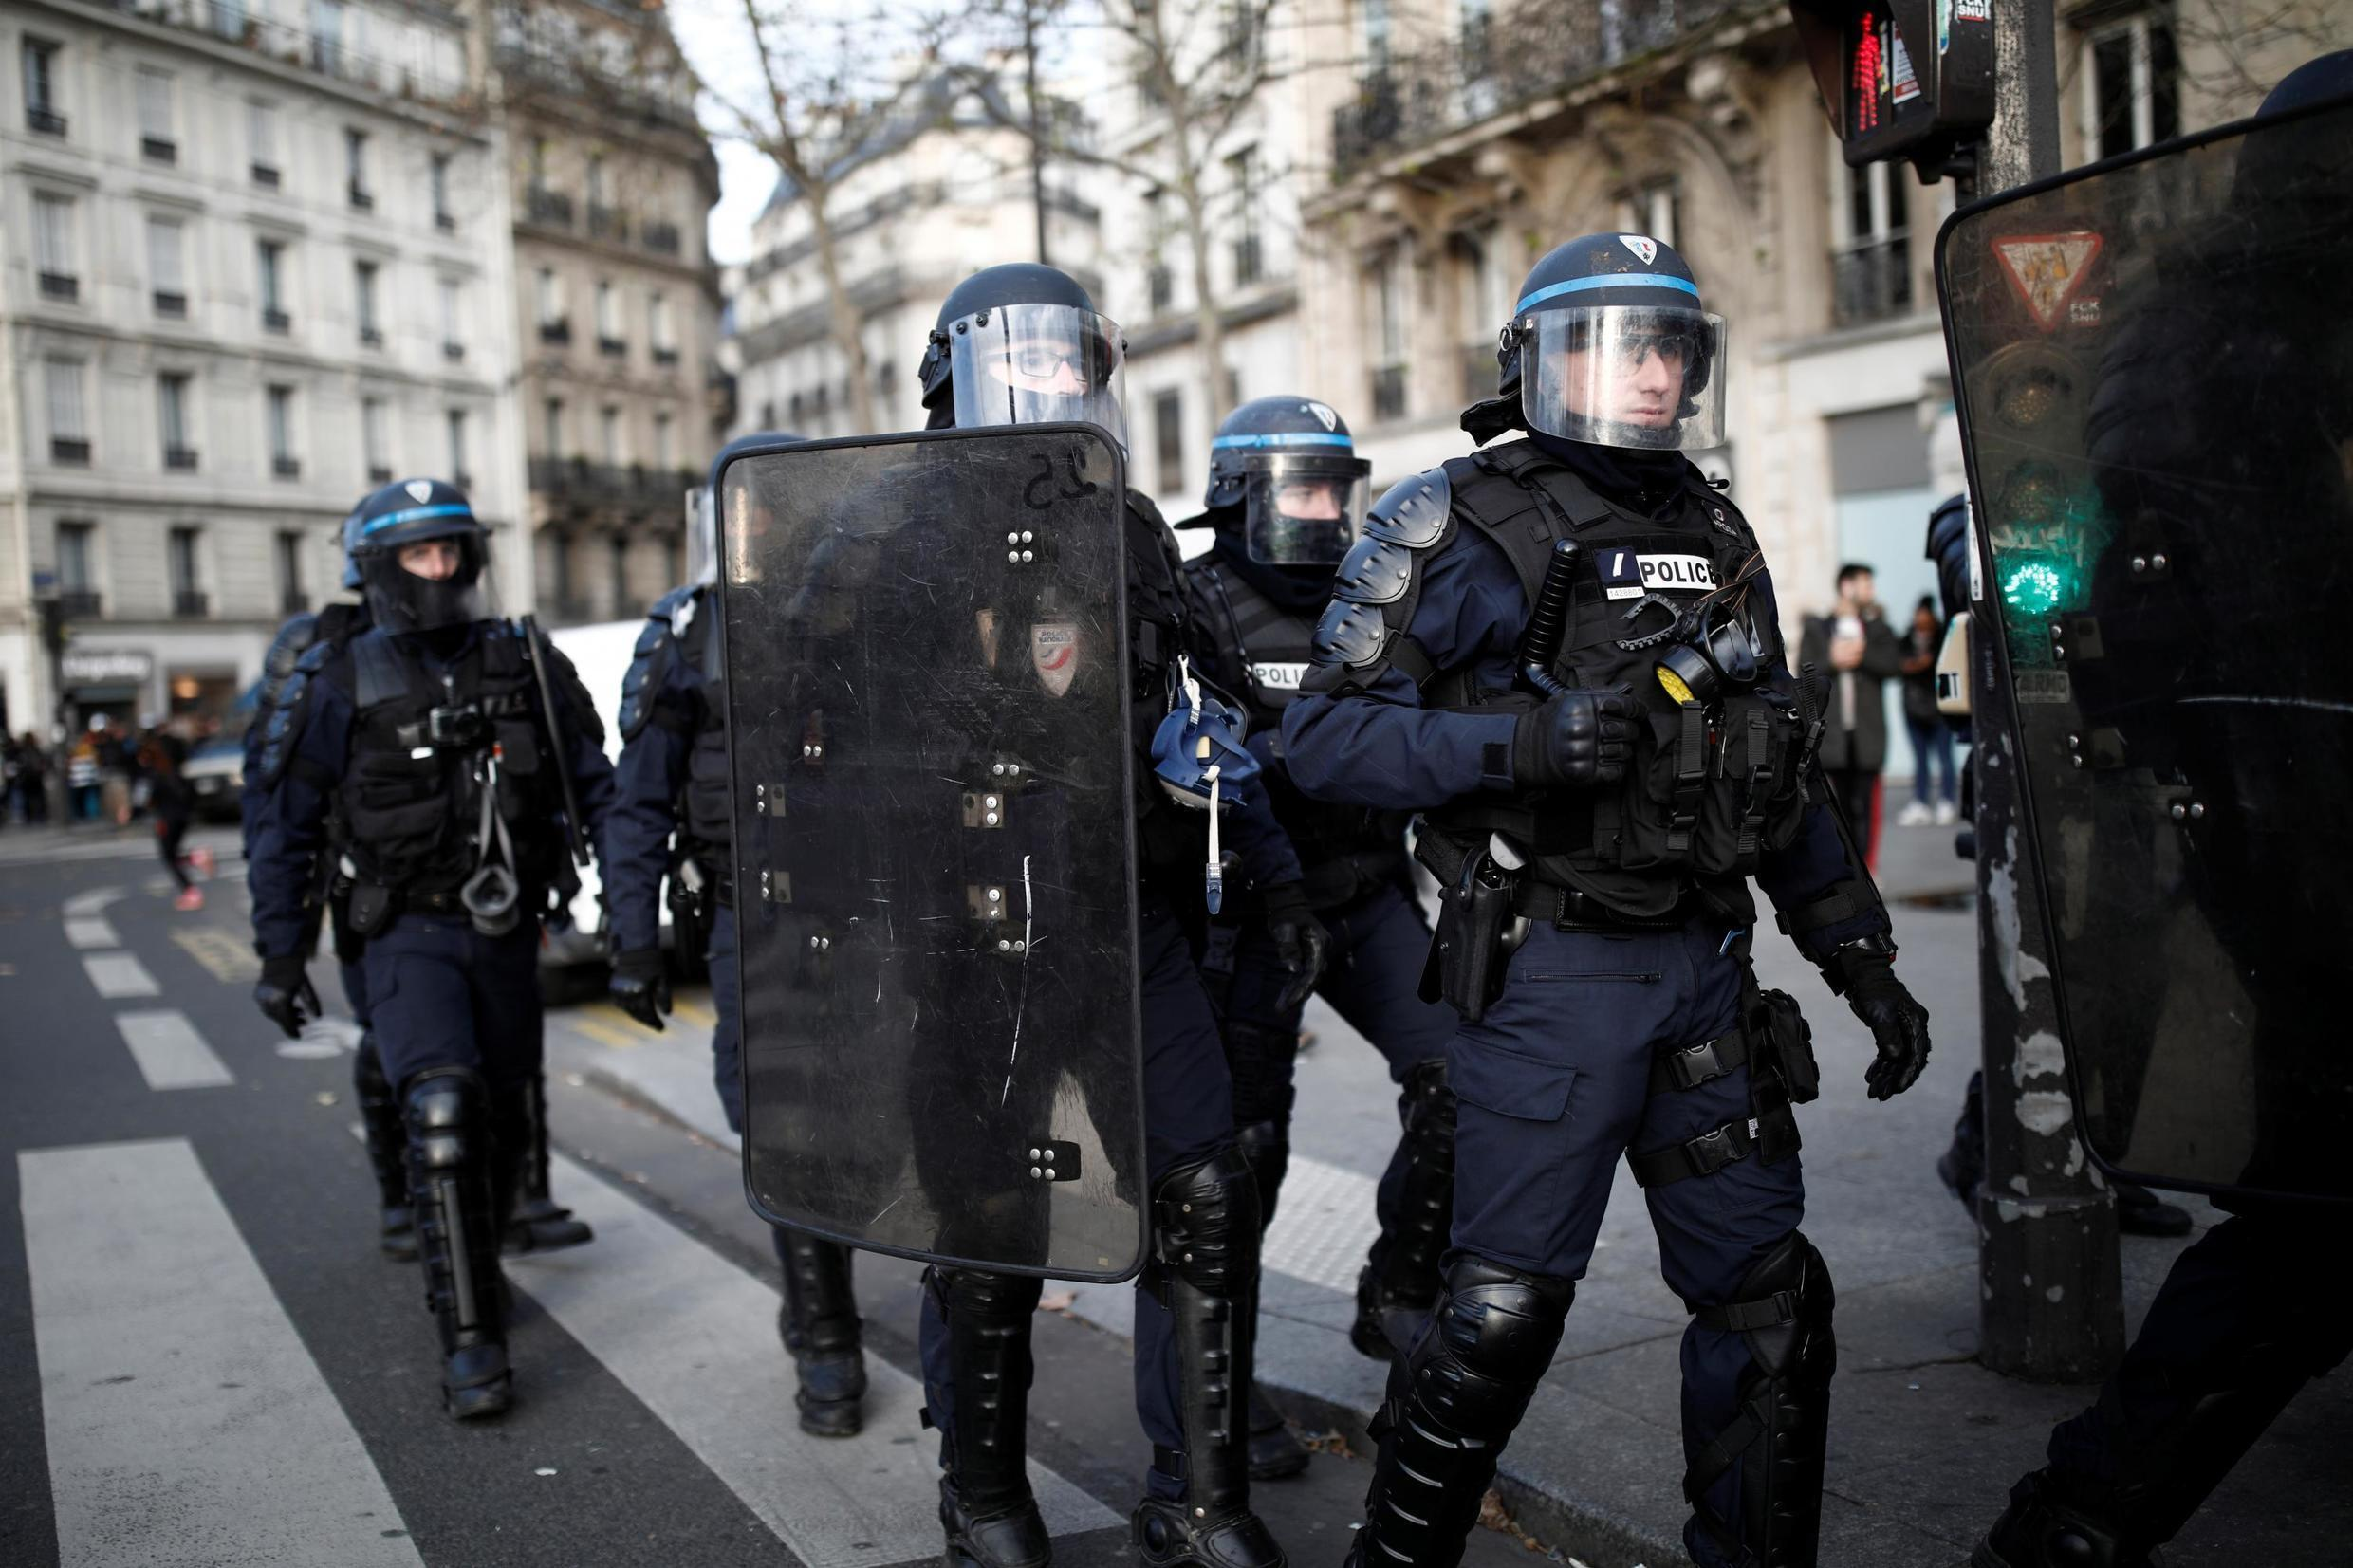 French riot police take position during a demonstration against French government's pensions reform plans in Paris as part of a second day of national strike and protests in France, December 10, 2019.